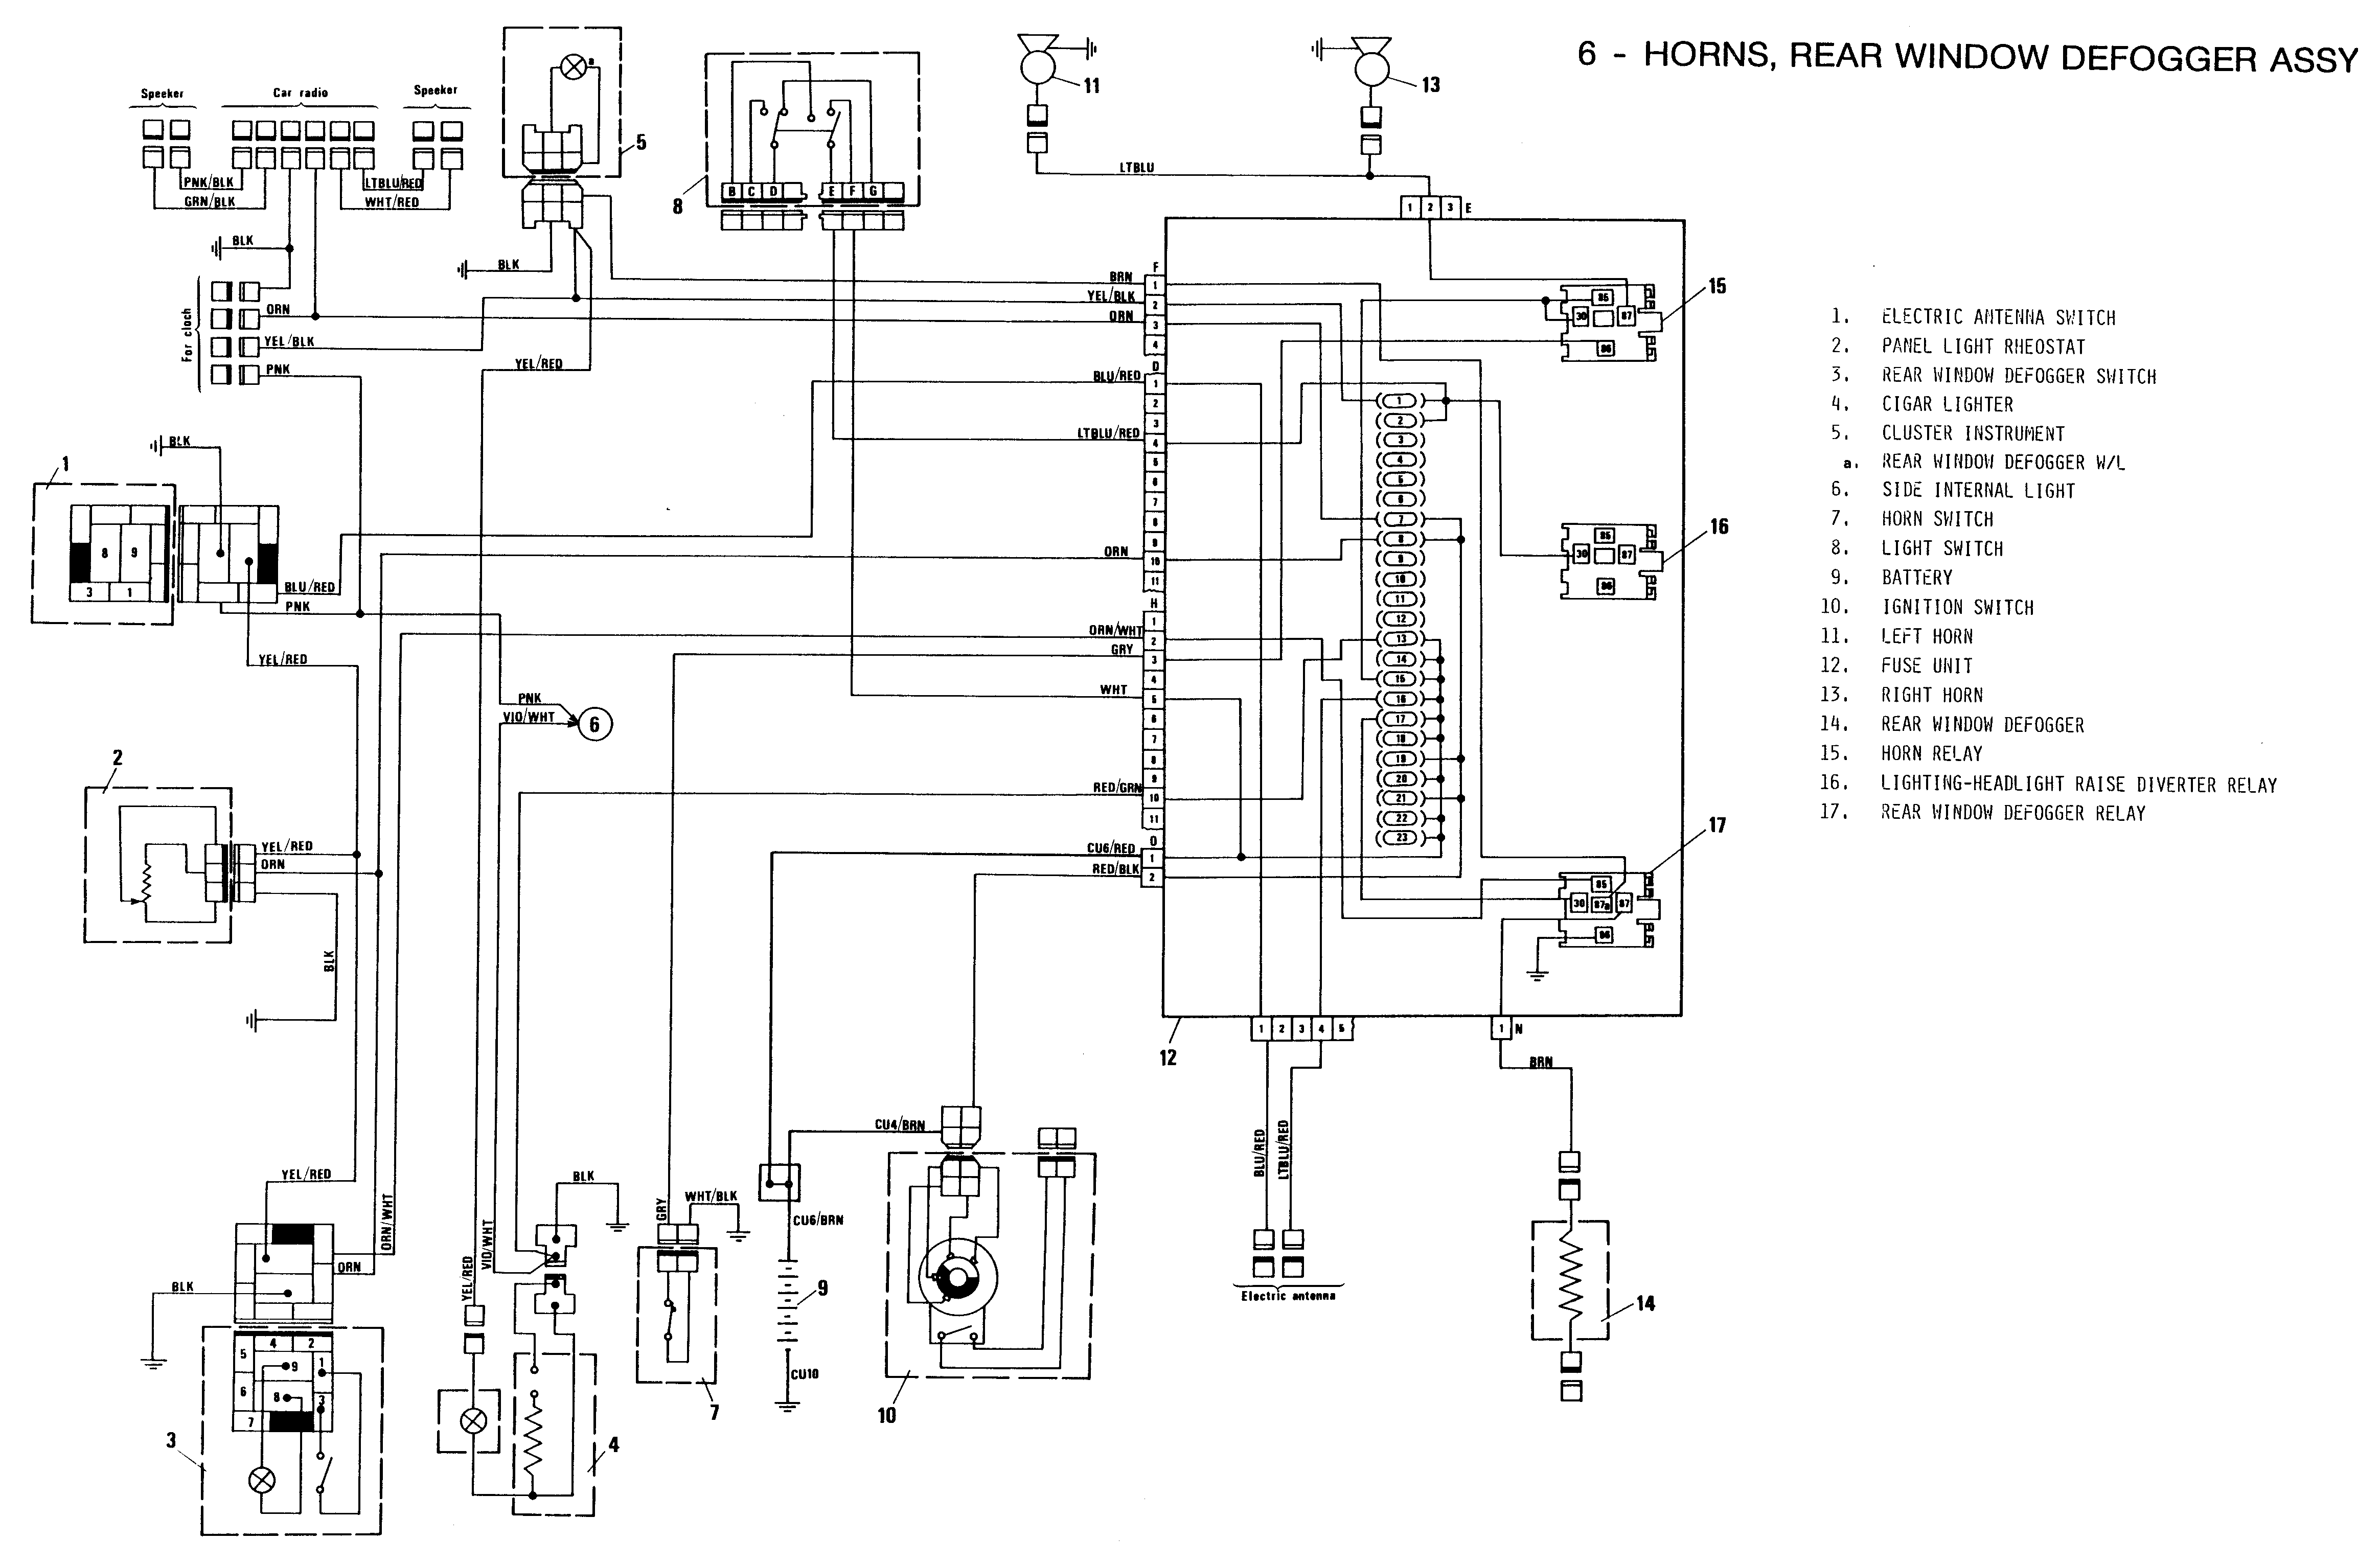 bertone_6 x1 wiring diagram light switch wiring diagram \u2022 wiring diagrams fiat punto fuse box diagram 2003 at n-0.co